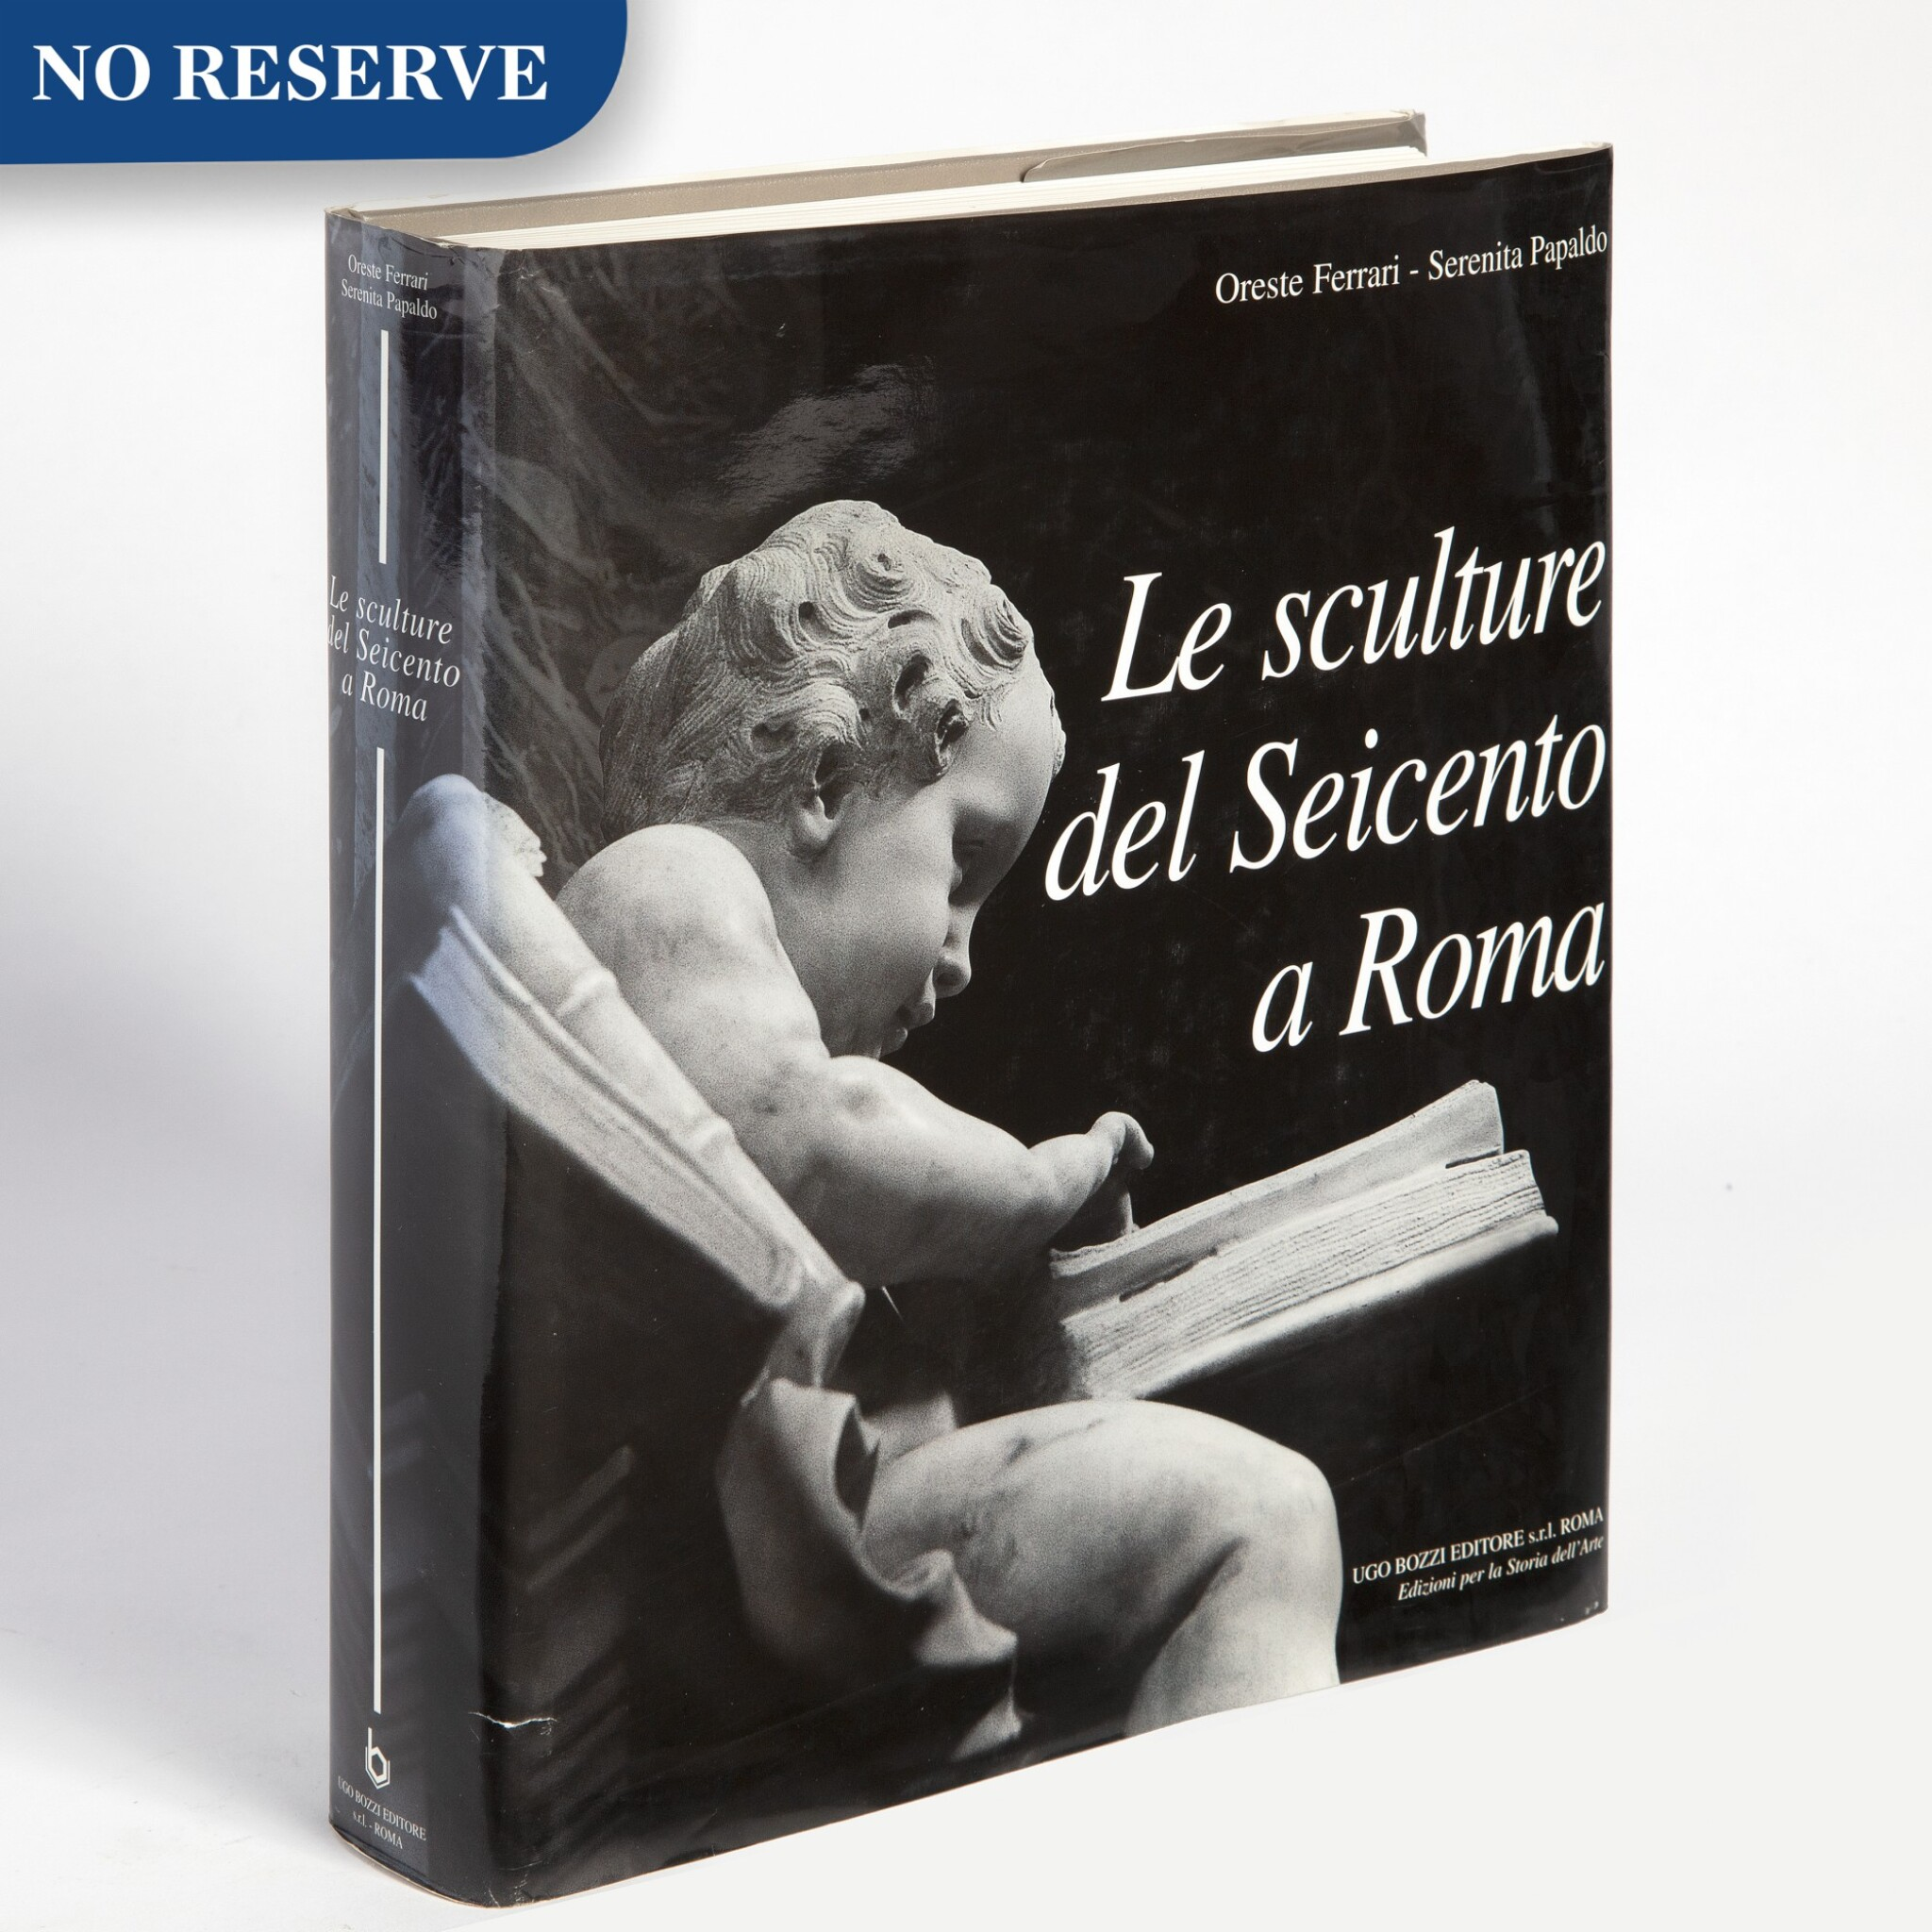 A selection of books on Italian Baroque sculptors